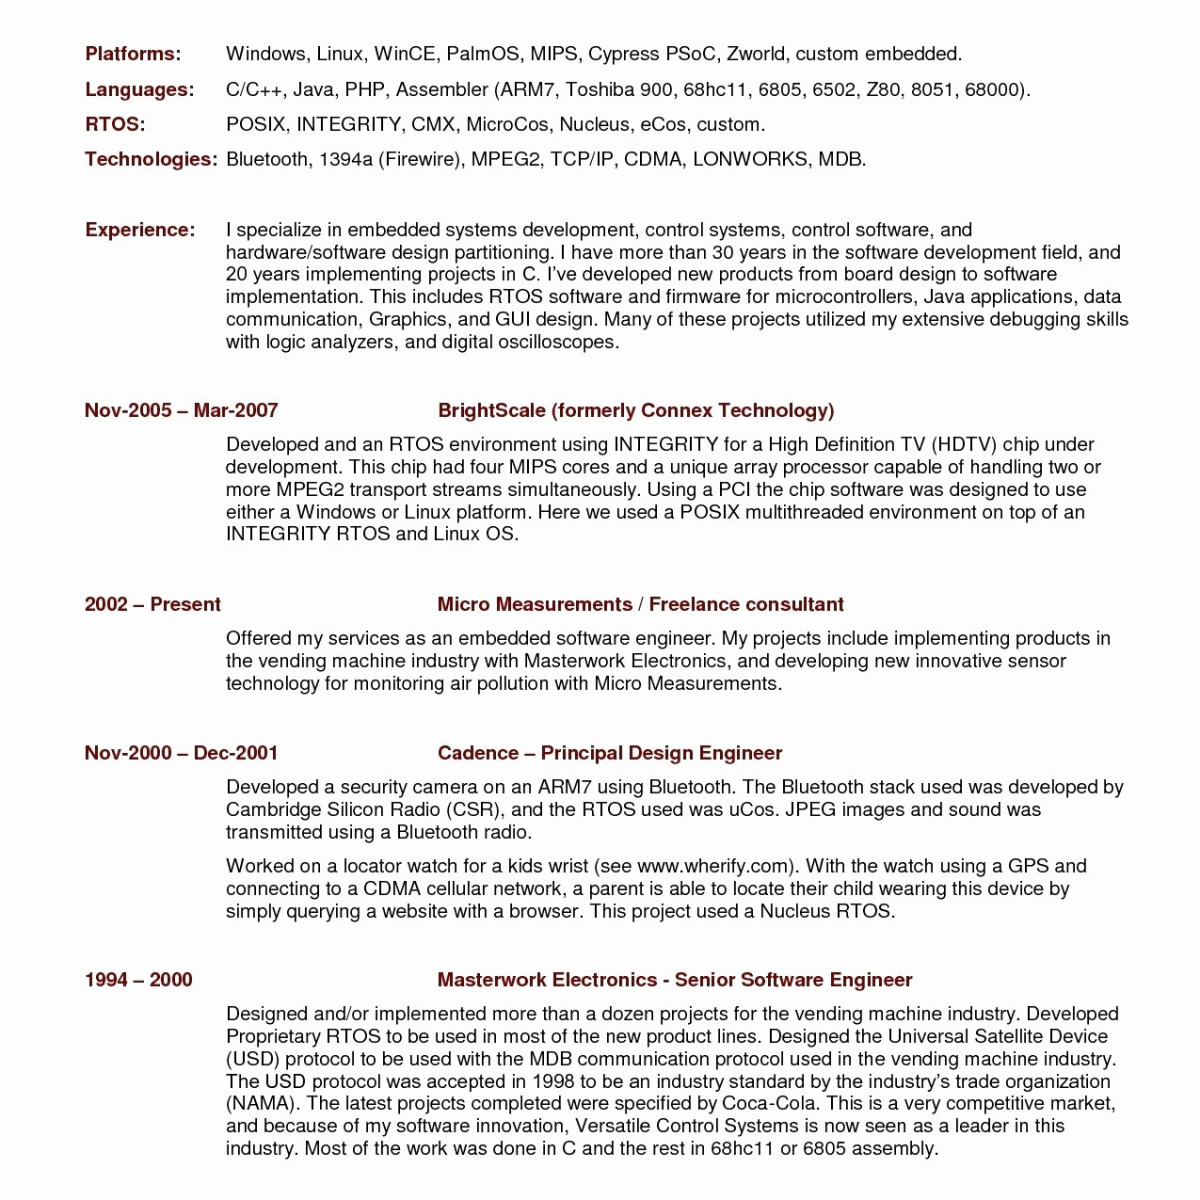 Free Resume Builders - How to Create A Free Resume Luxury Free Resume Pdf Fresh Free Resume